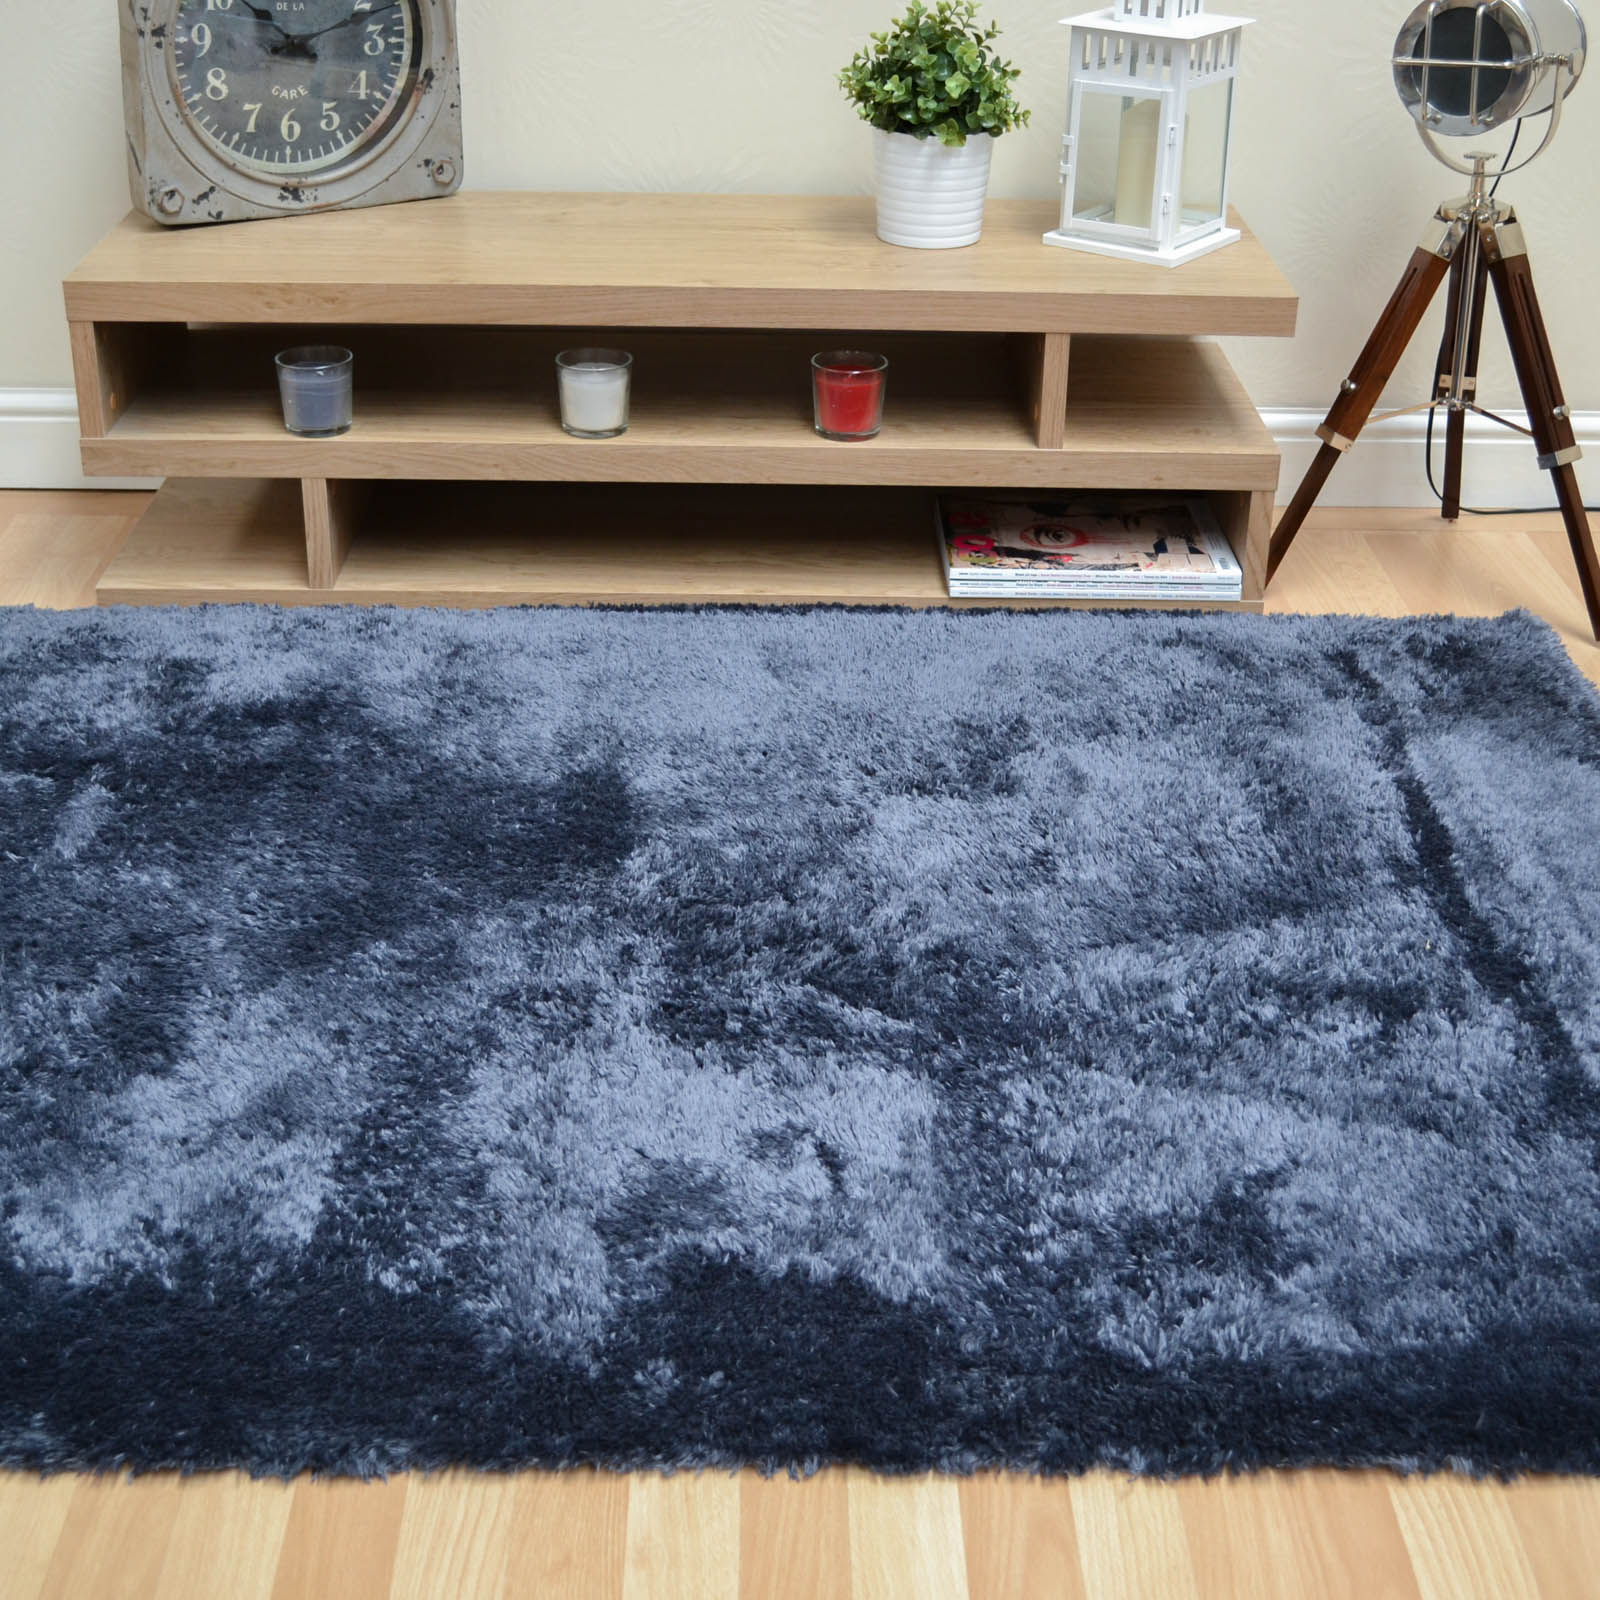 Footsie Shaggy Rugs FOO03 in Charcoal